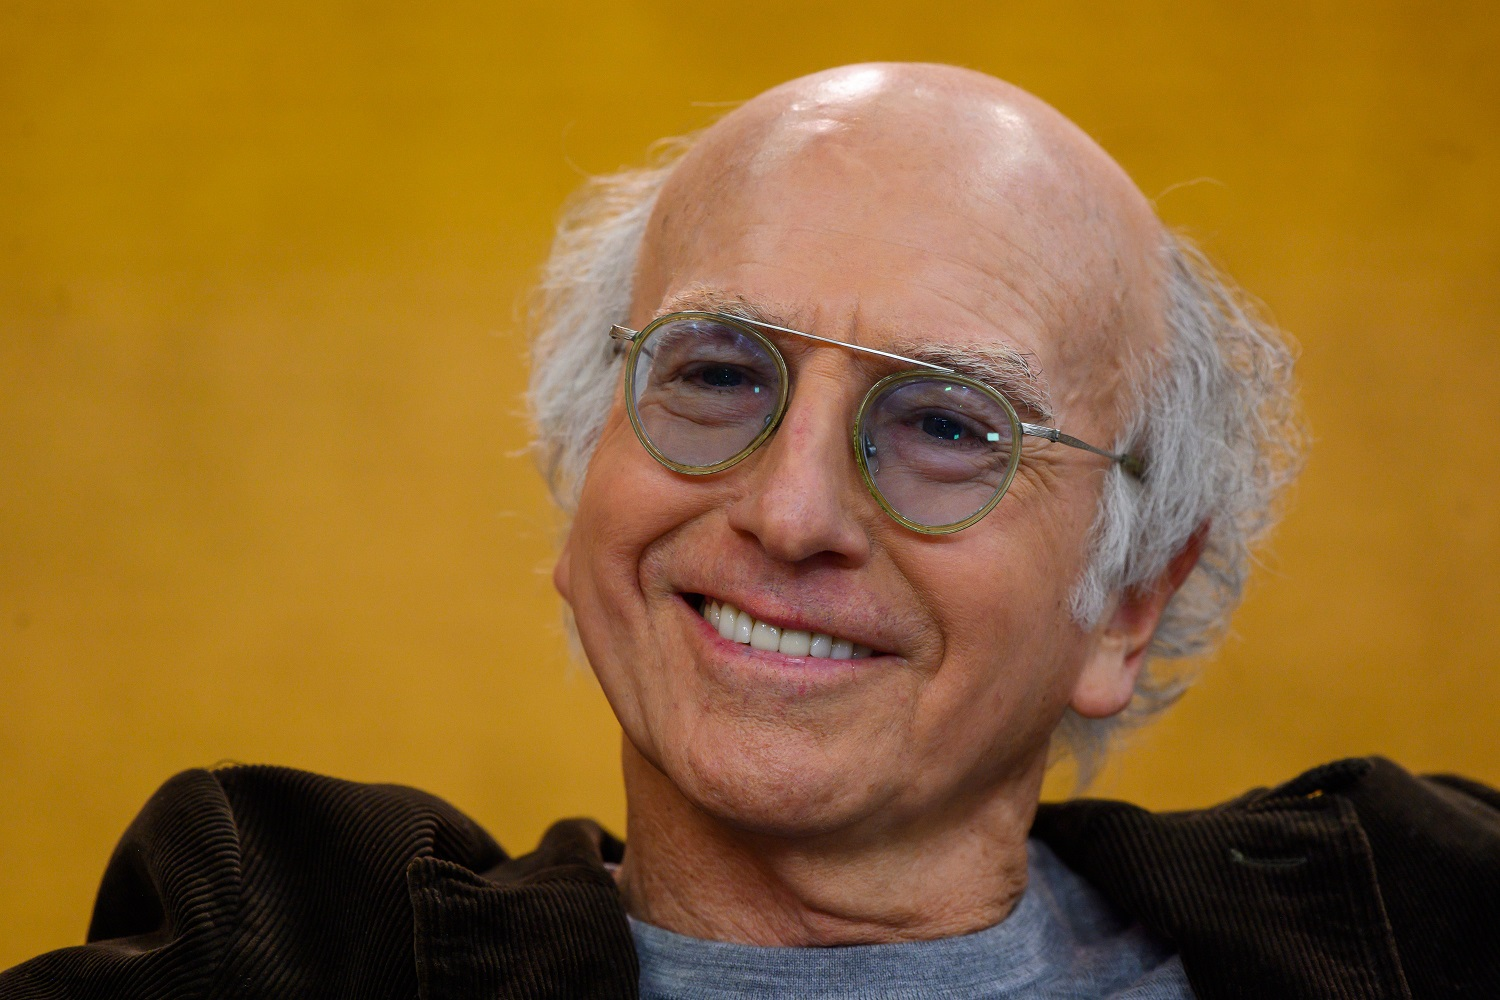 Curb Your Enthusiasm star and creator Larry David